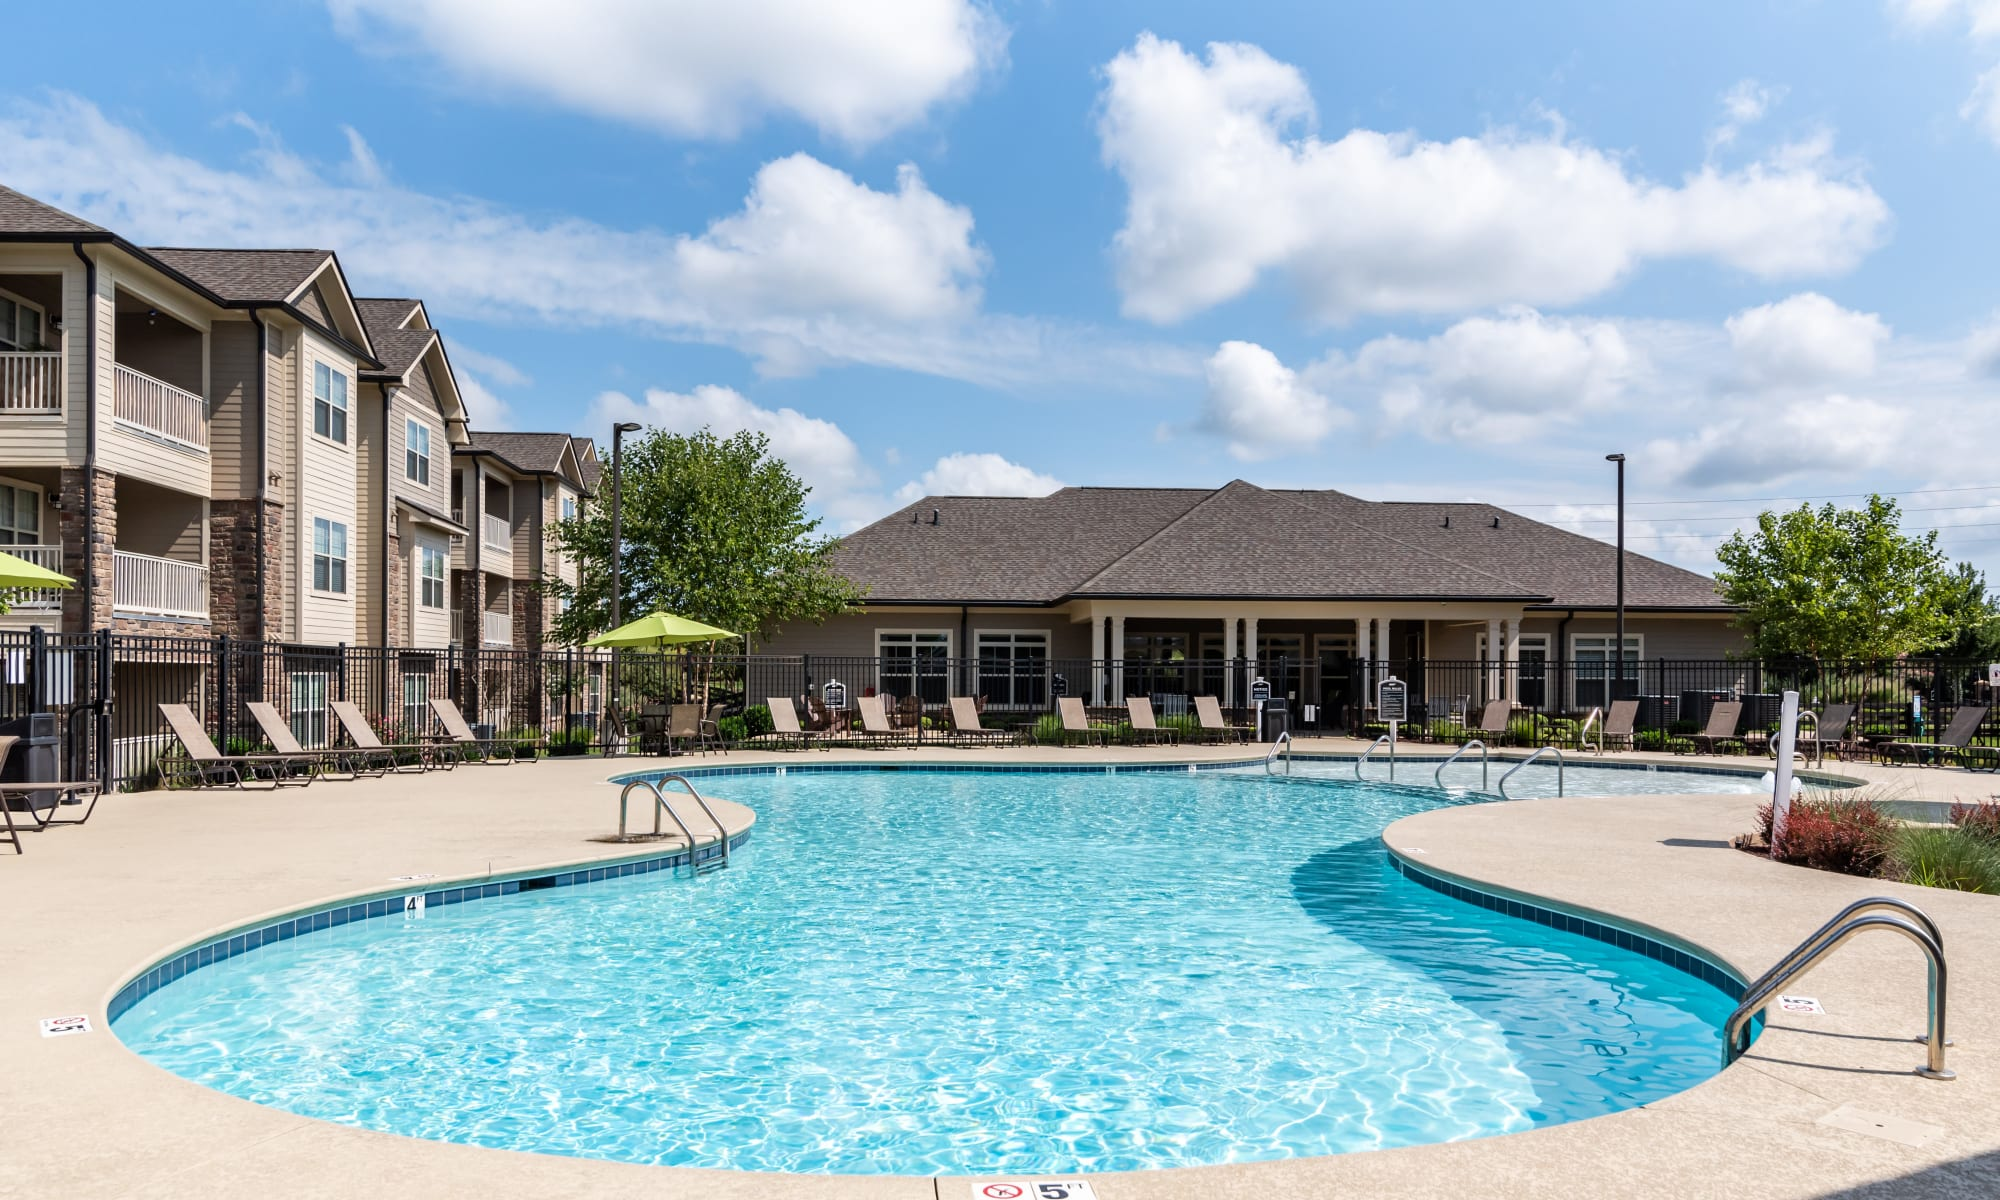 Swimming Pool at Commonwealth at 31 in Spring Hill, Tennessee